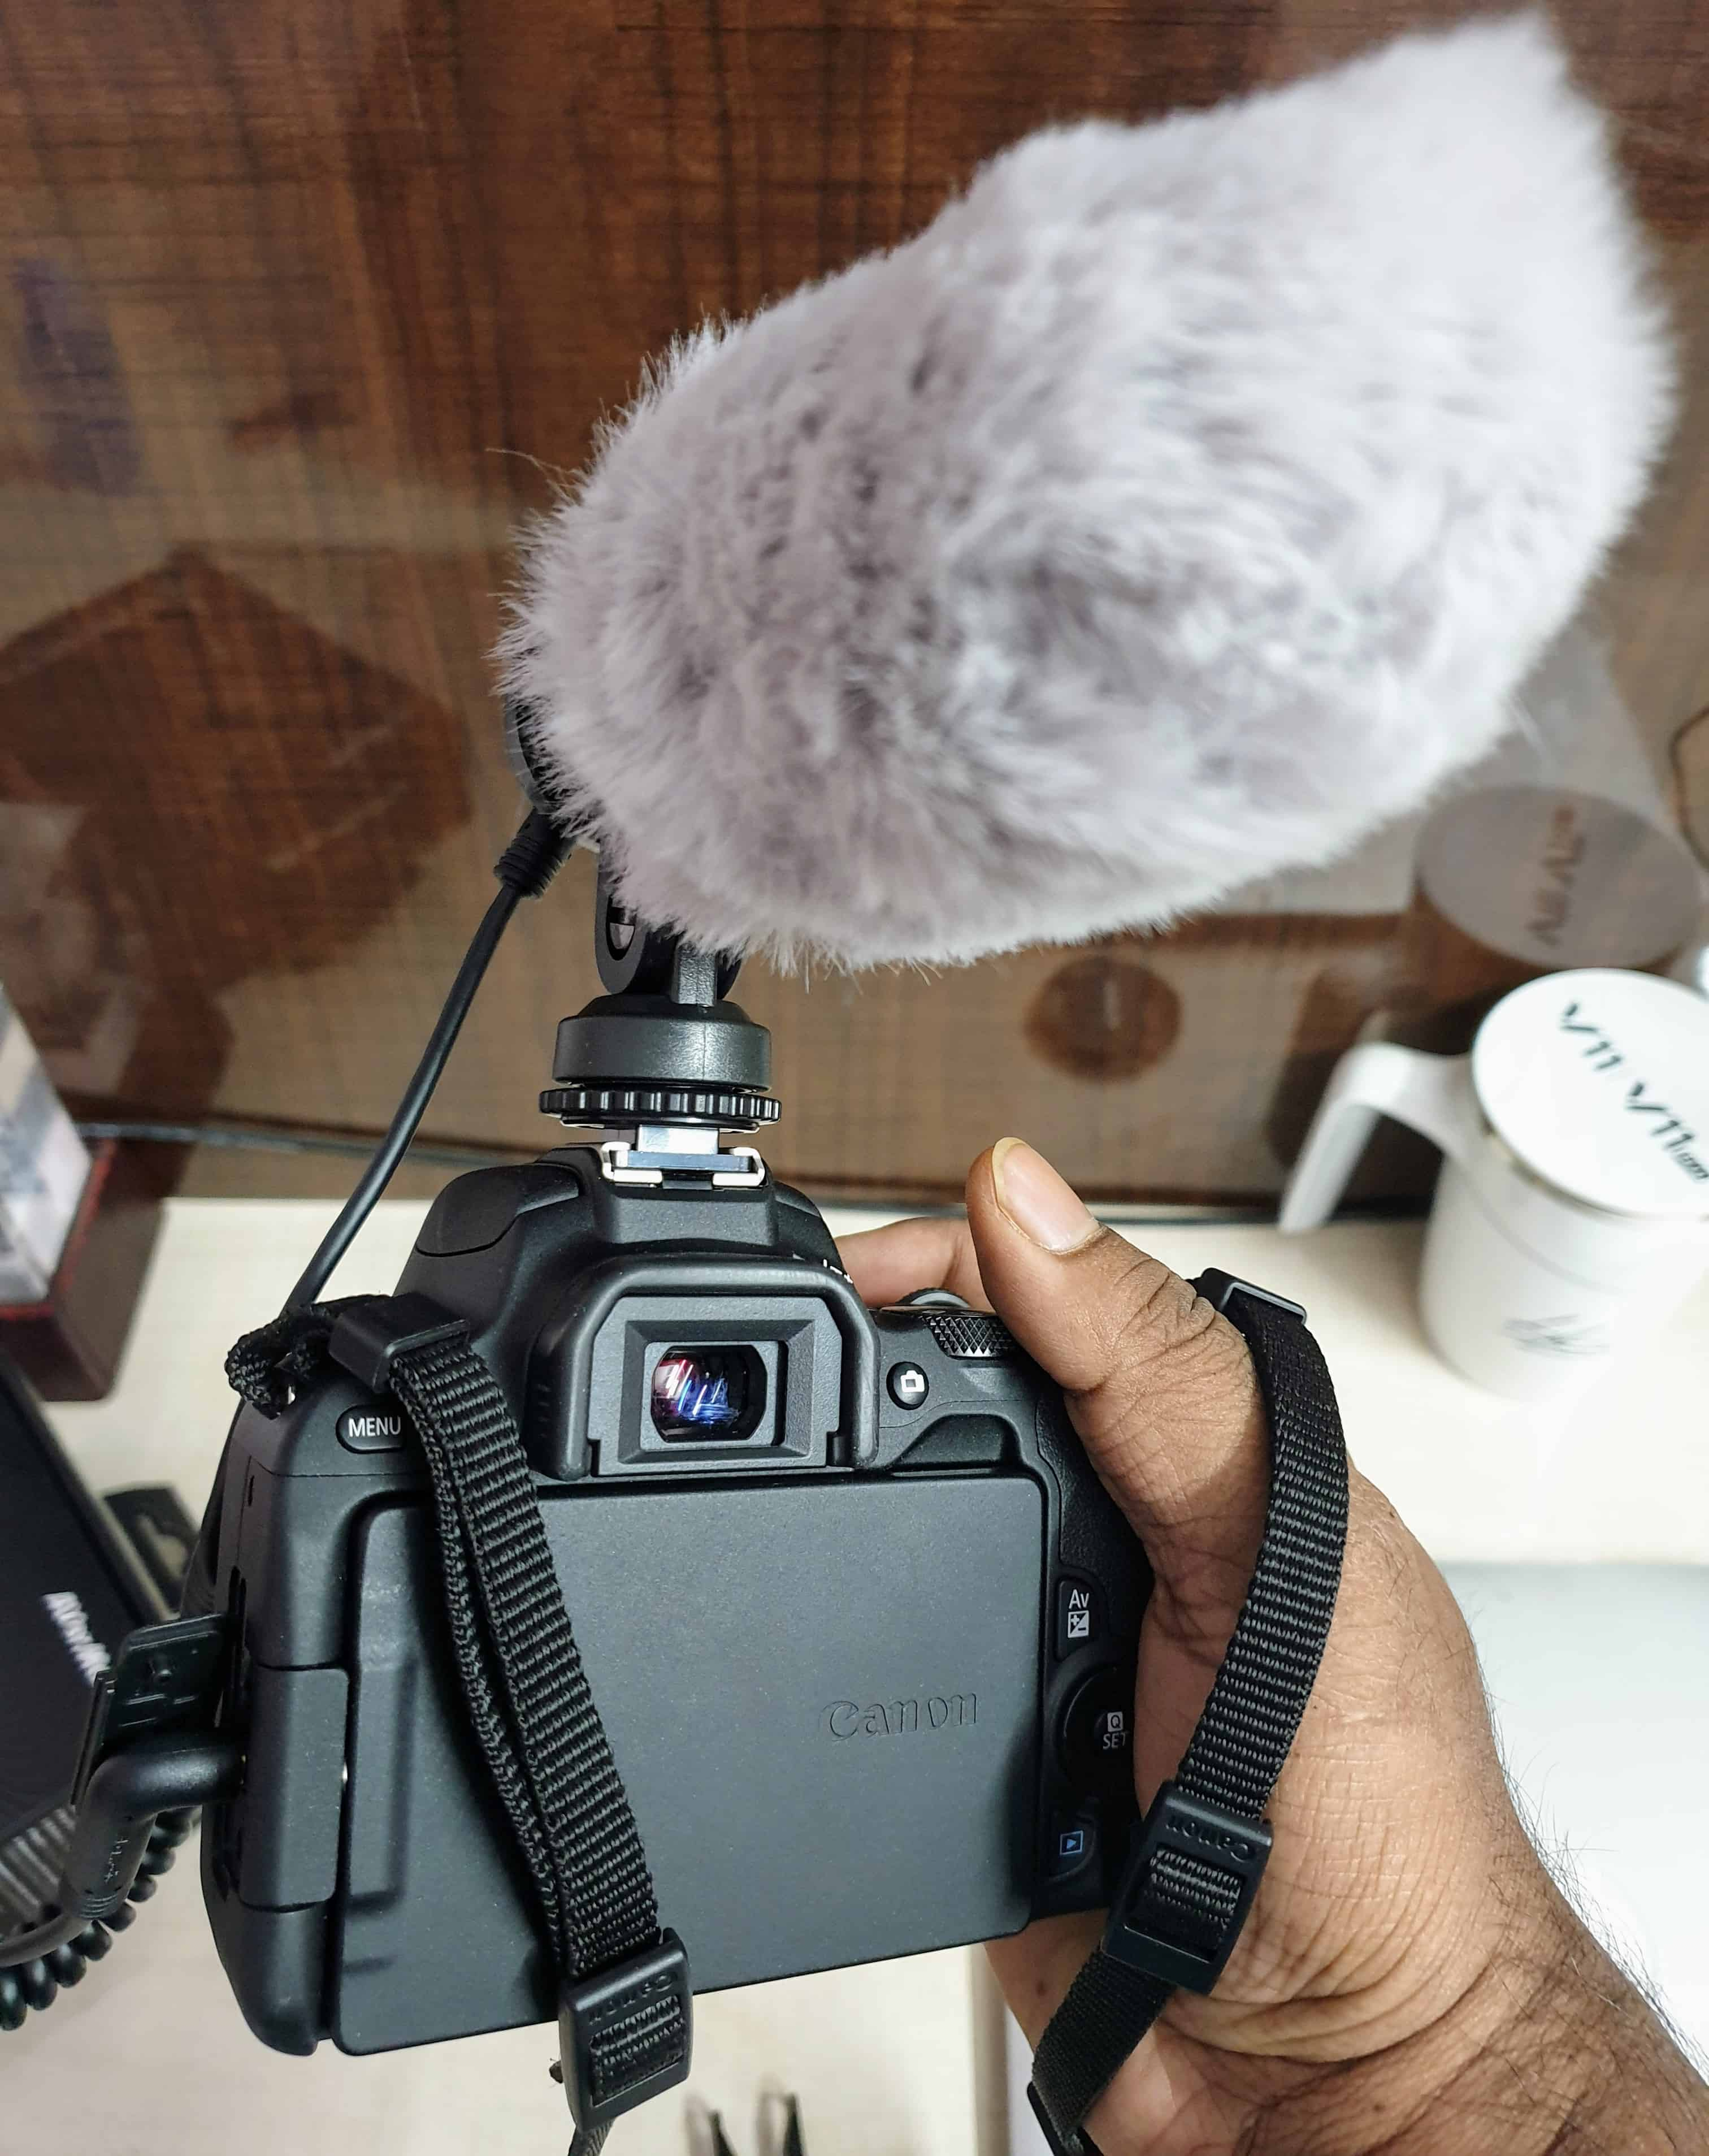 AVerMedia Live Streamer MIC 133 Review - A Must-Have Accessory for Content Creators! - 1